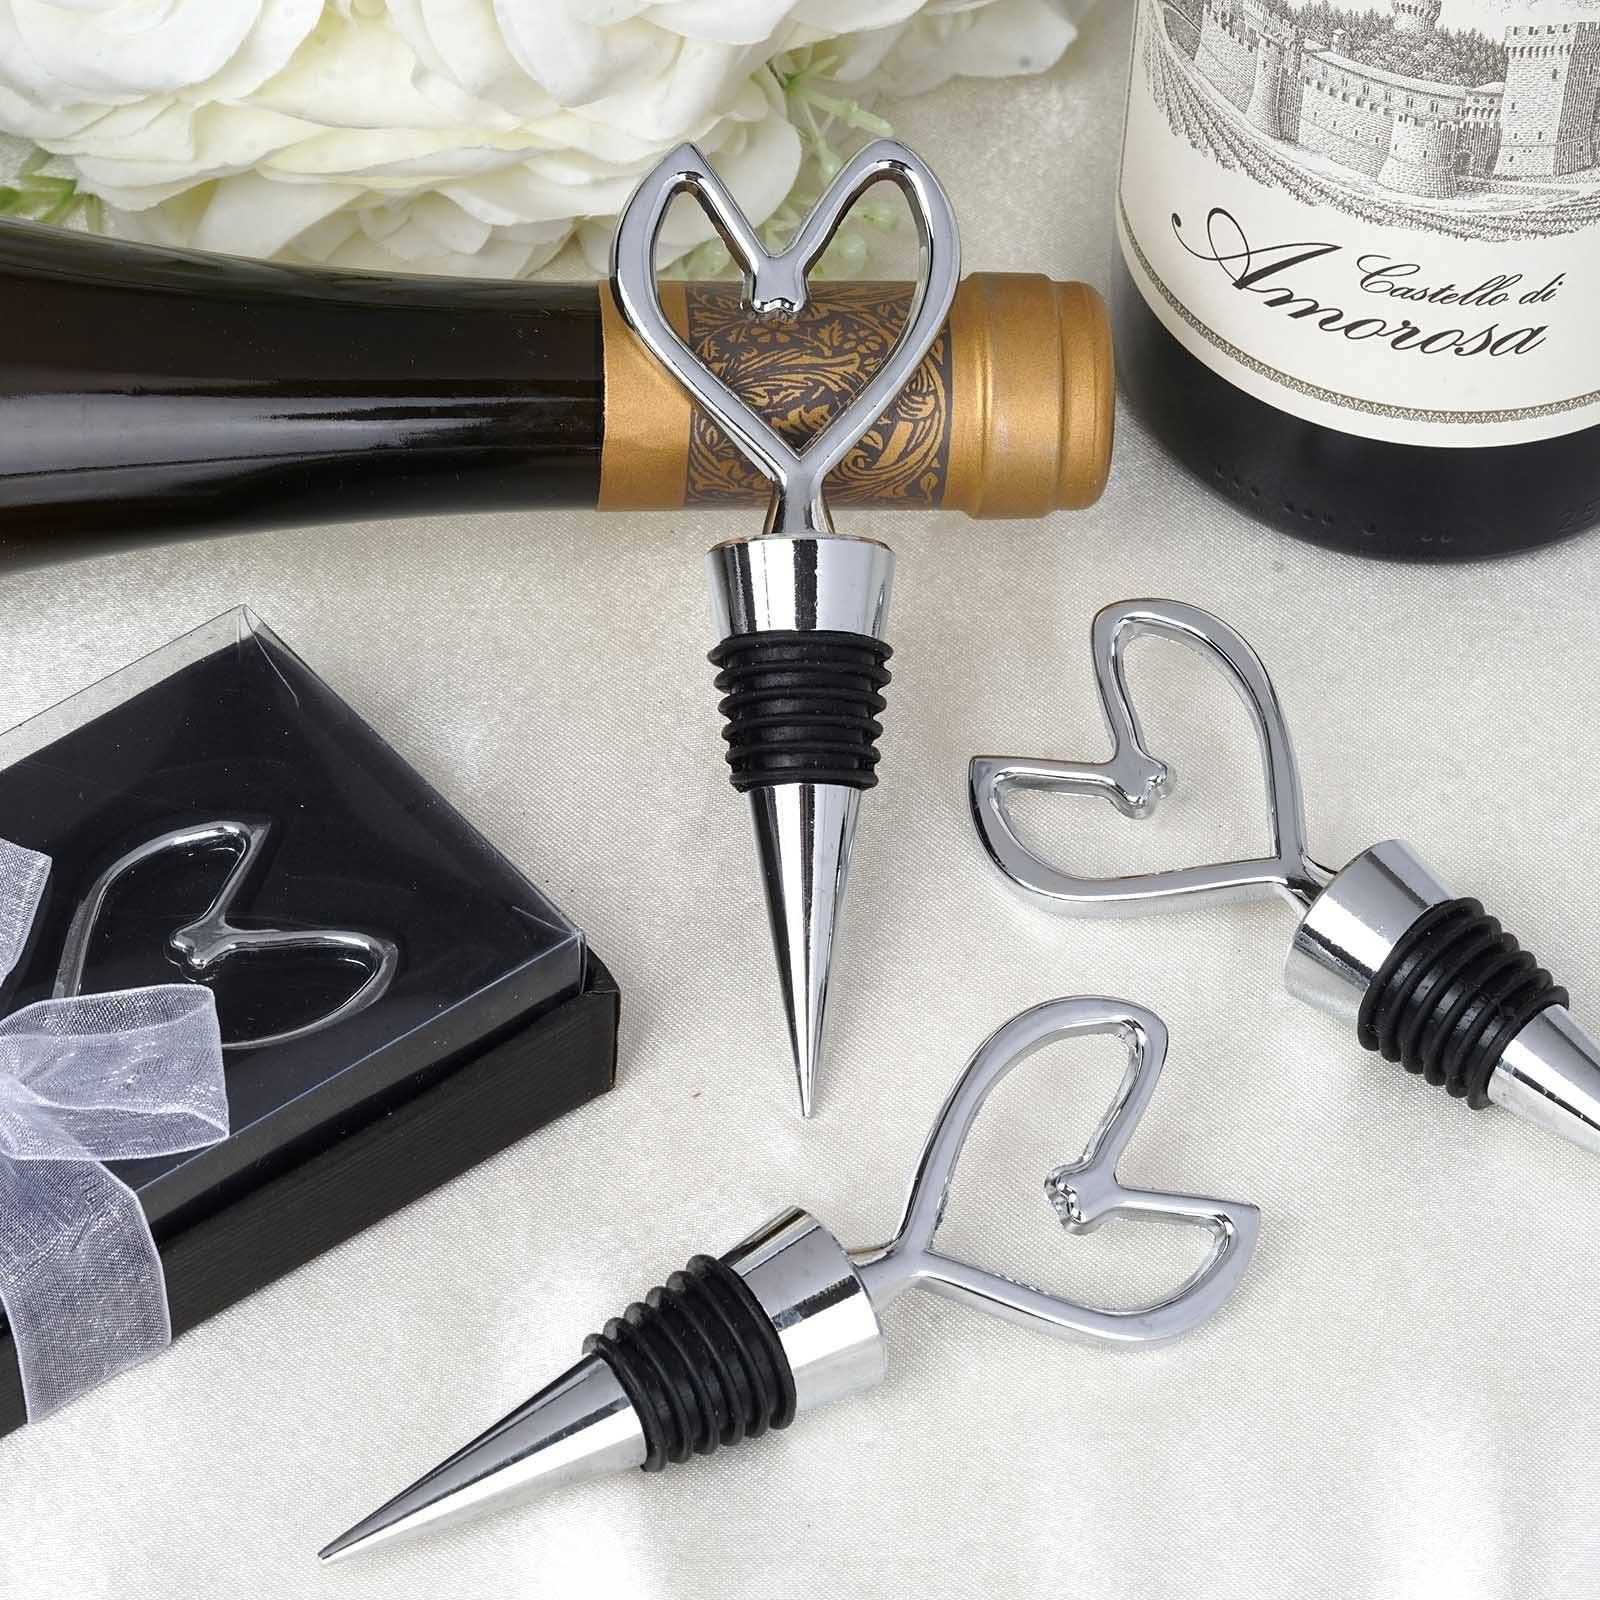 Heart Bottle Stopper | eFavorMart / Add a contemporary touch to your party favors and keepsakes by presenting our chrome finish metallic Bottle Stoppers to your friends and family. The glitzy sheen of silver metal augmented by the stunning heart shape makes these bottle stoppers a perfectly elegant and voguish party favor, keepsake, or bridesmaid gift. This chrome heart shaped wine bottle stopper features a bedazzling metallic finish that glimmers like diamonds when exposed to light…